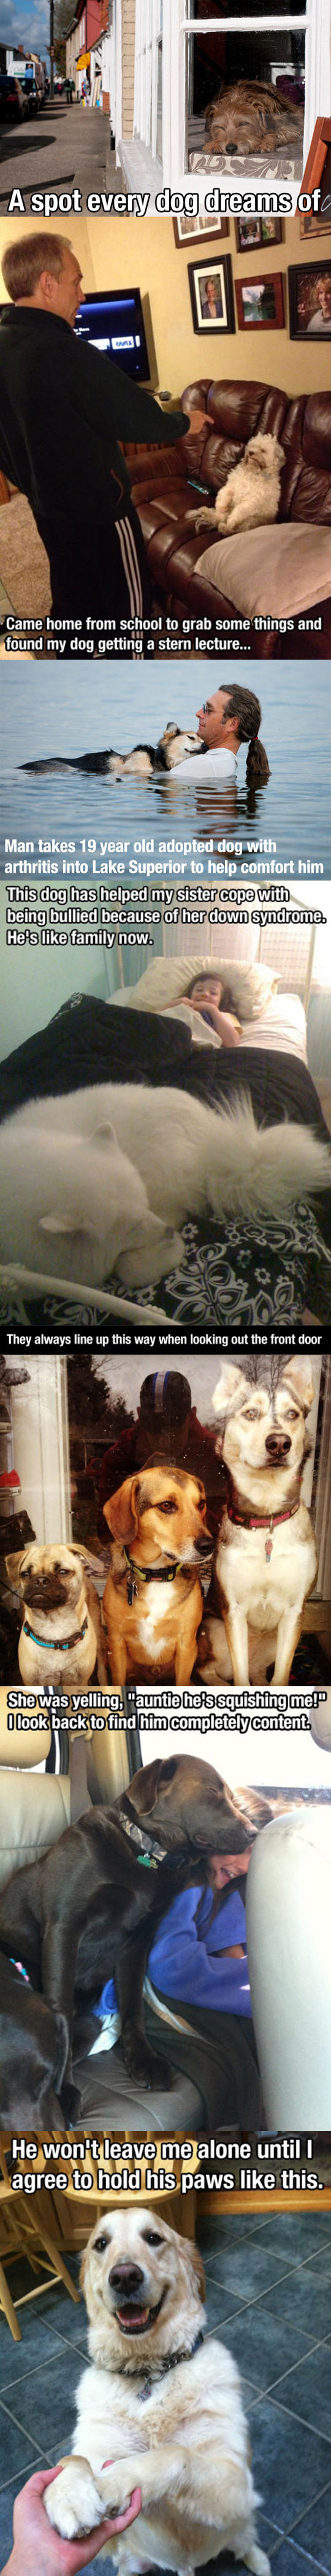 funny-dog-bus-cute-animals-awesome